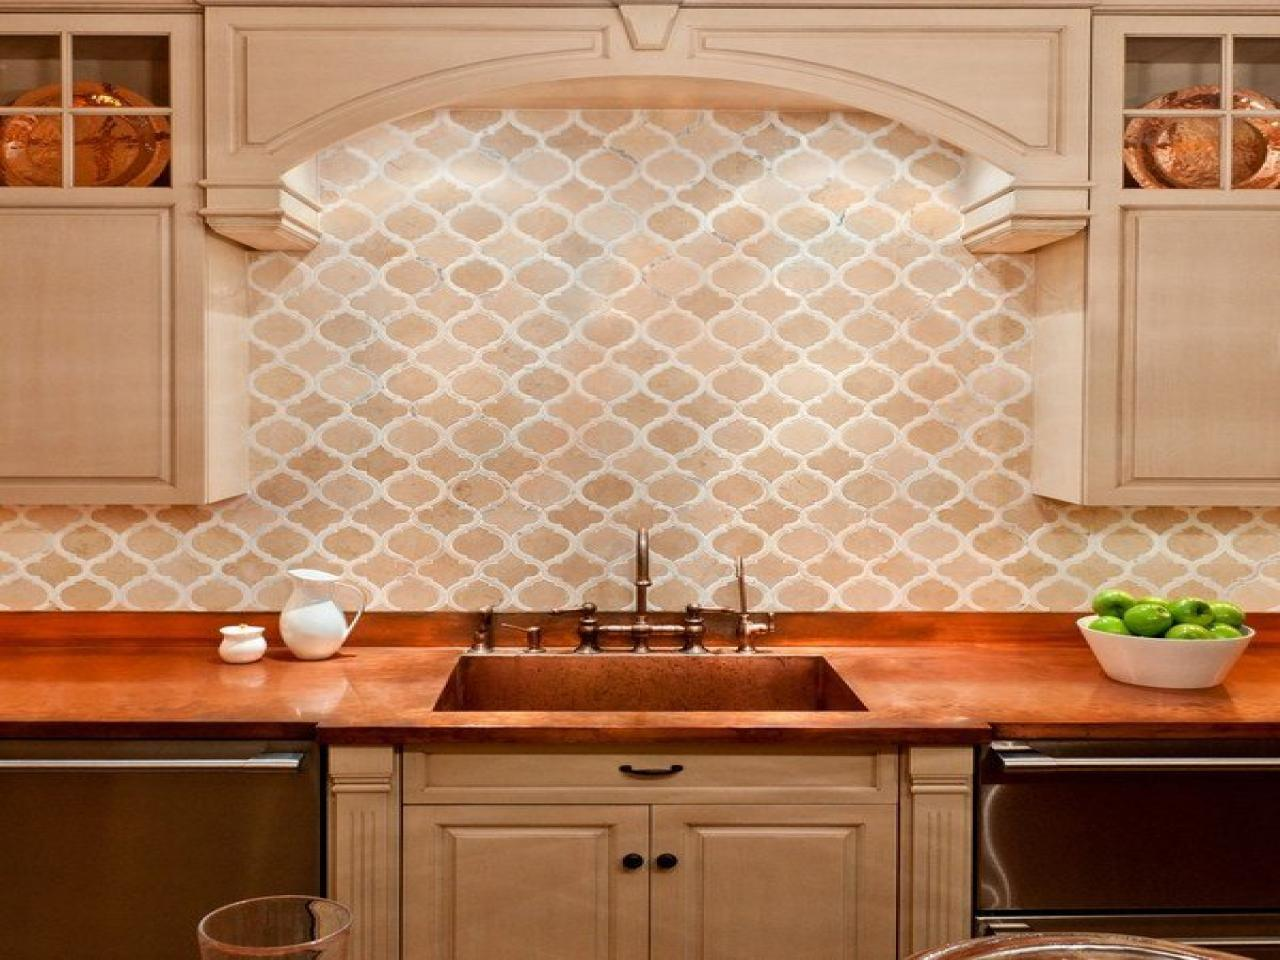 Image of: moroccan glass backsplash